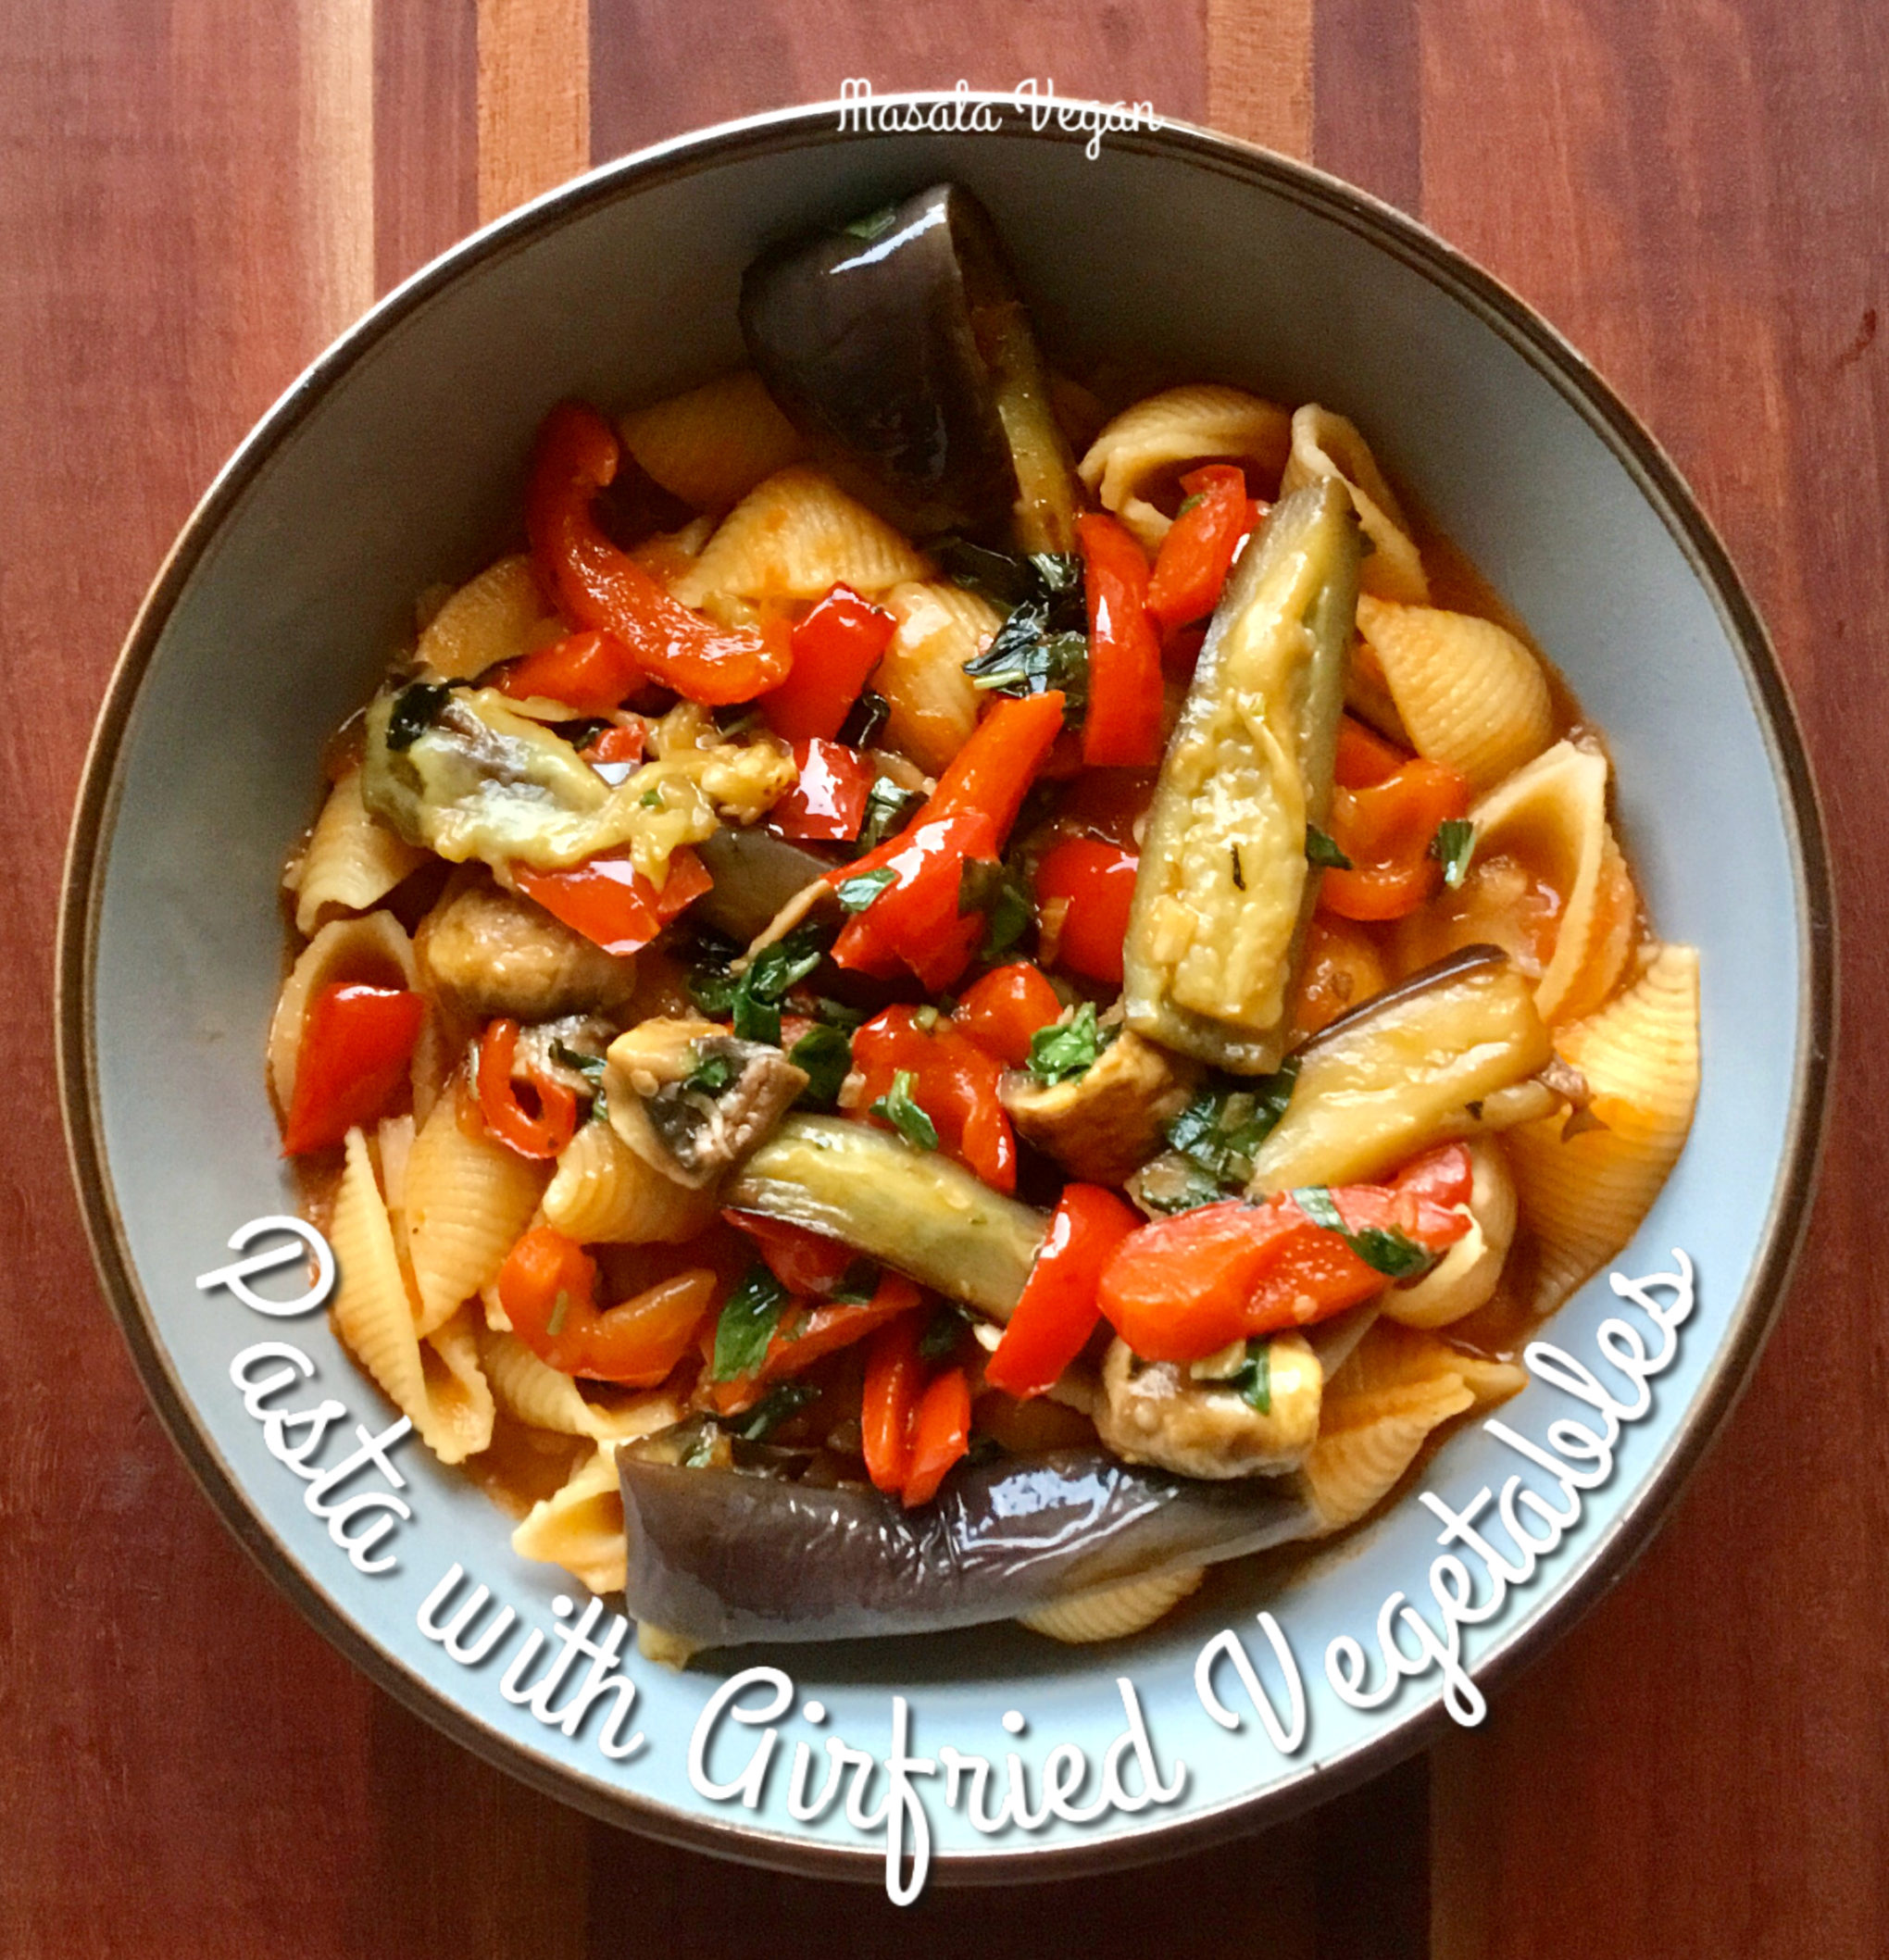 Picture of plate with Shell Pasta with Airfried Vegetables